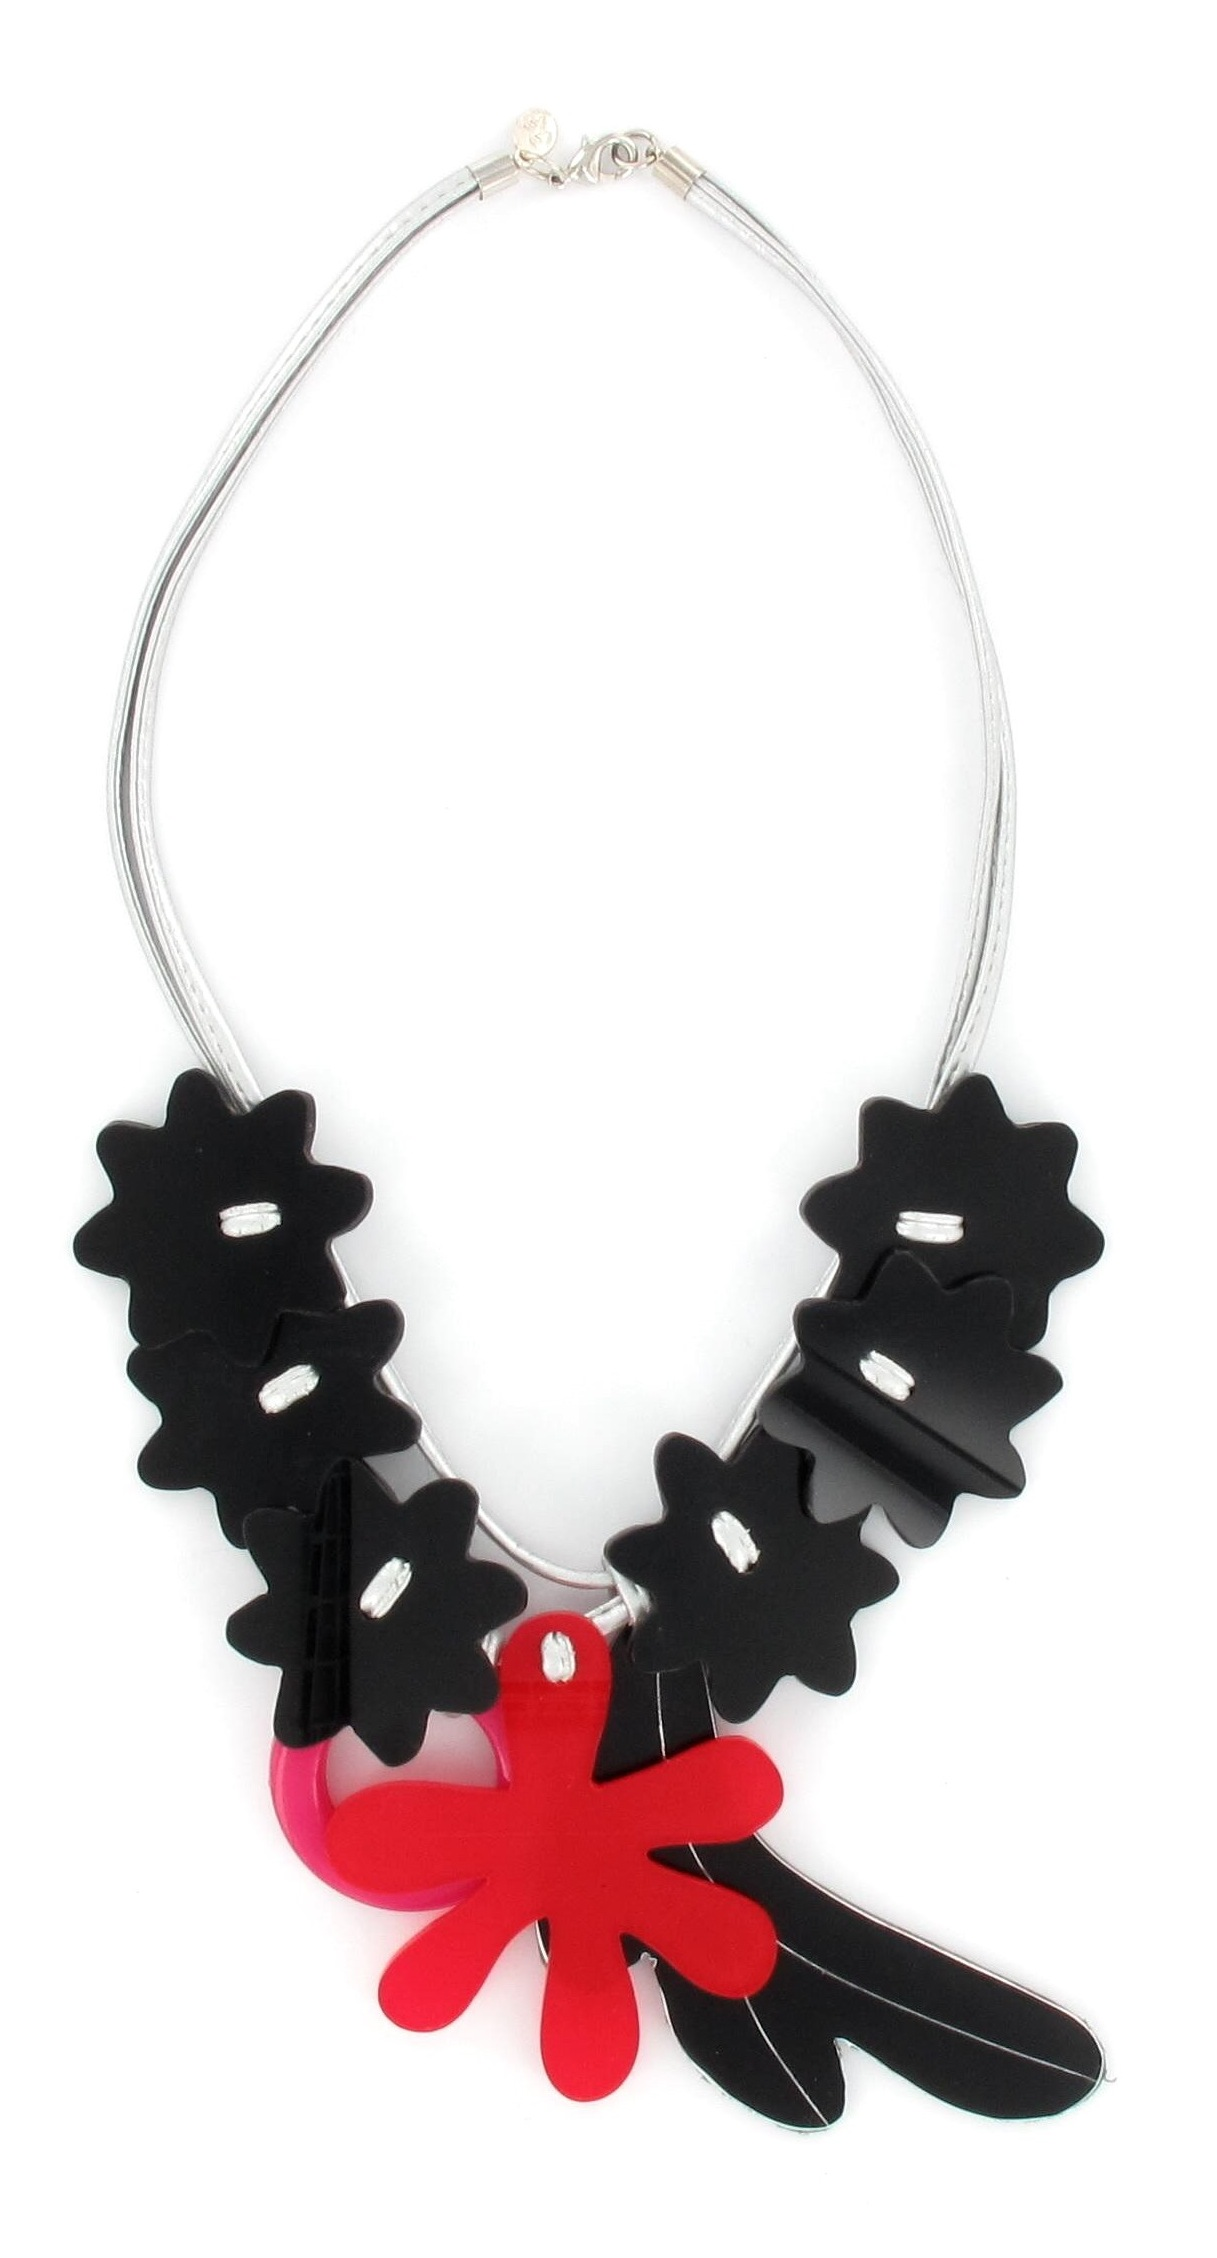 Collier1R_06 - copie (1)